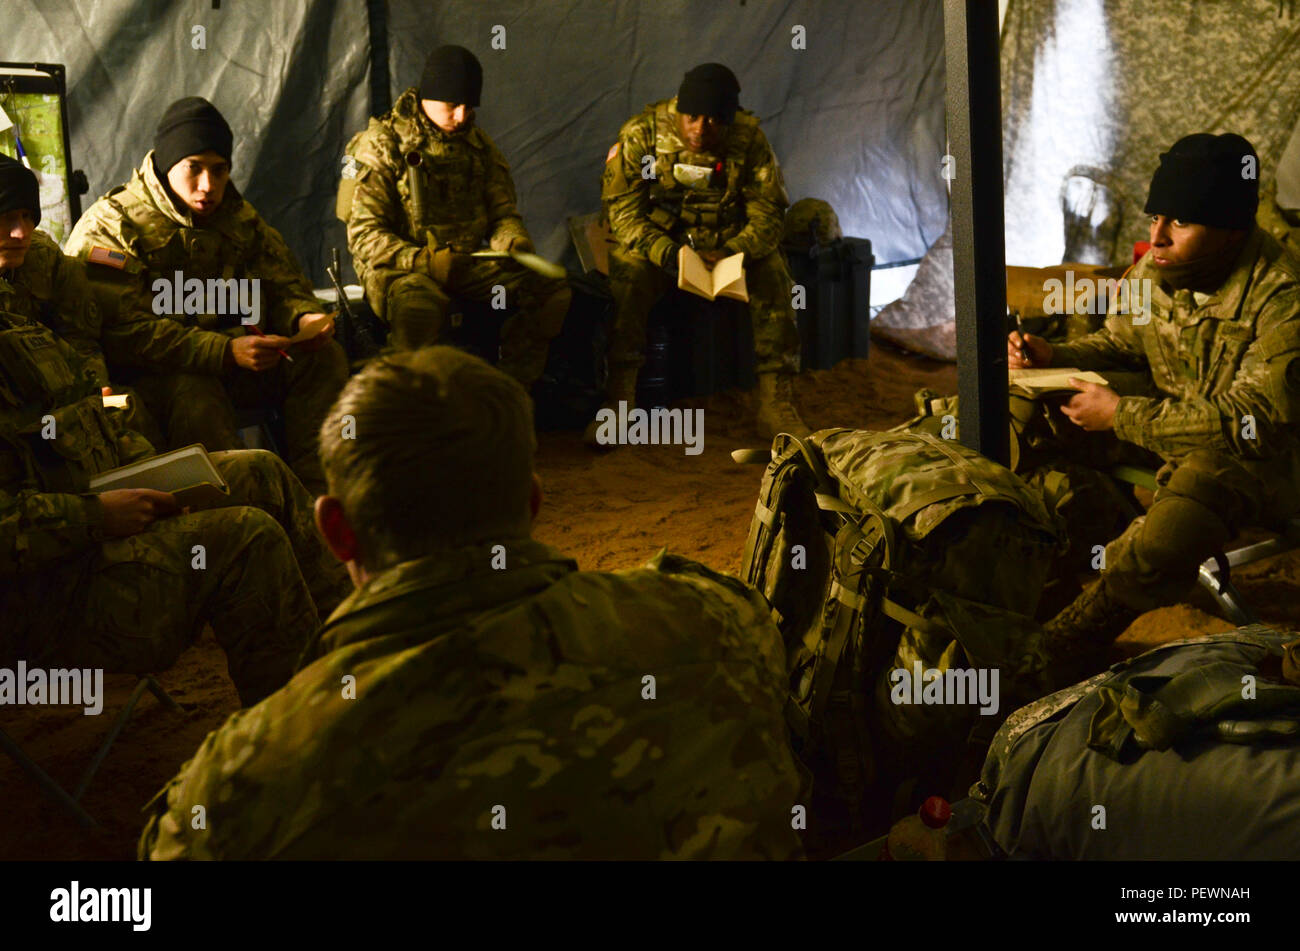 Sgt. Warren Bridenthal (front left and facing the Soldiers), a forward observer with 3rd Squadron, 2nd Cavalry Regiment, stationed out of Vilseck, Germany, originally from Riverside, Calif., refreshes the Reconnaissance Platoon on how to 'call for fire' during a night training exercise at Adazi Training Area in Latvia, Feb. 3, 2016. (Photo by U.S. Army Staff Sgt. Steven M. Colvin/Released) - Stock Image